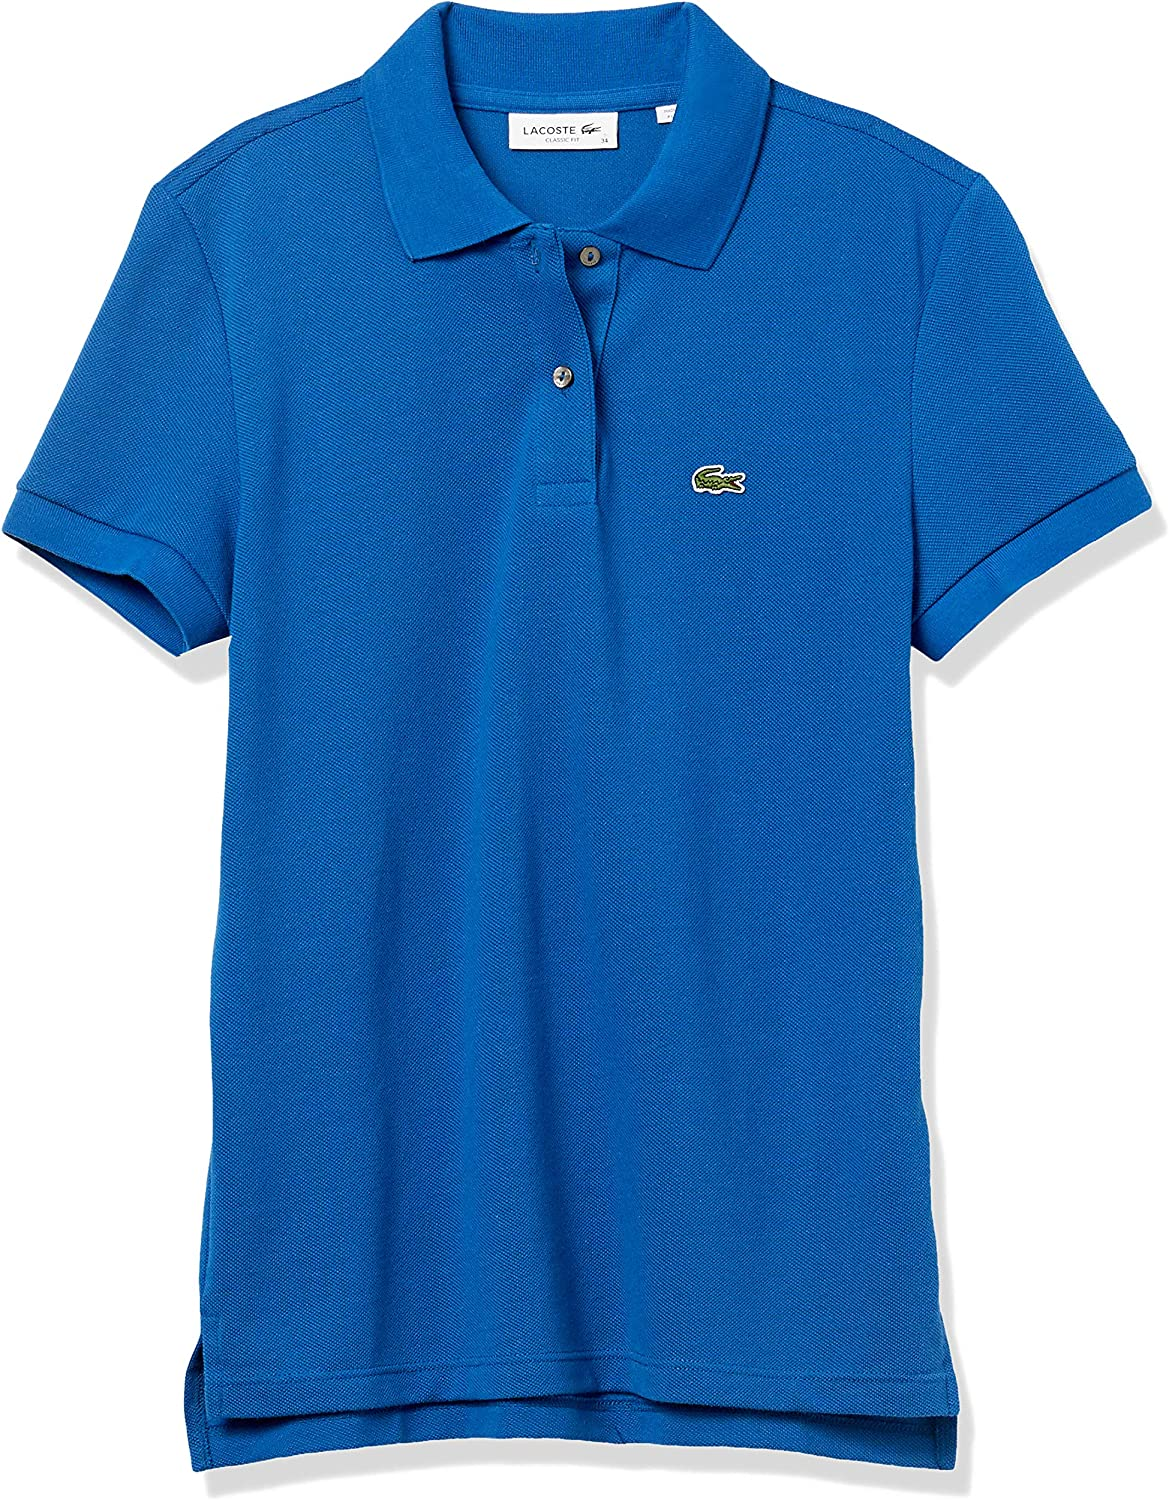 Lacoste Women's Legacy Short Sleeve Classic Fit Pique Polo